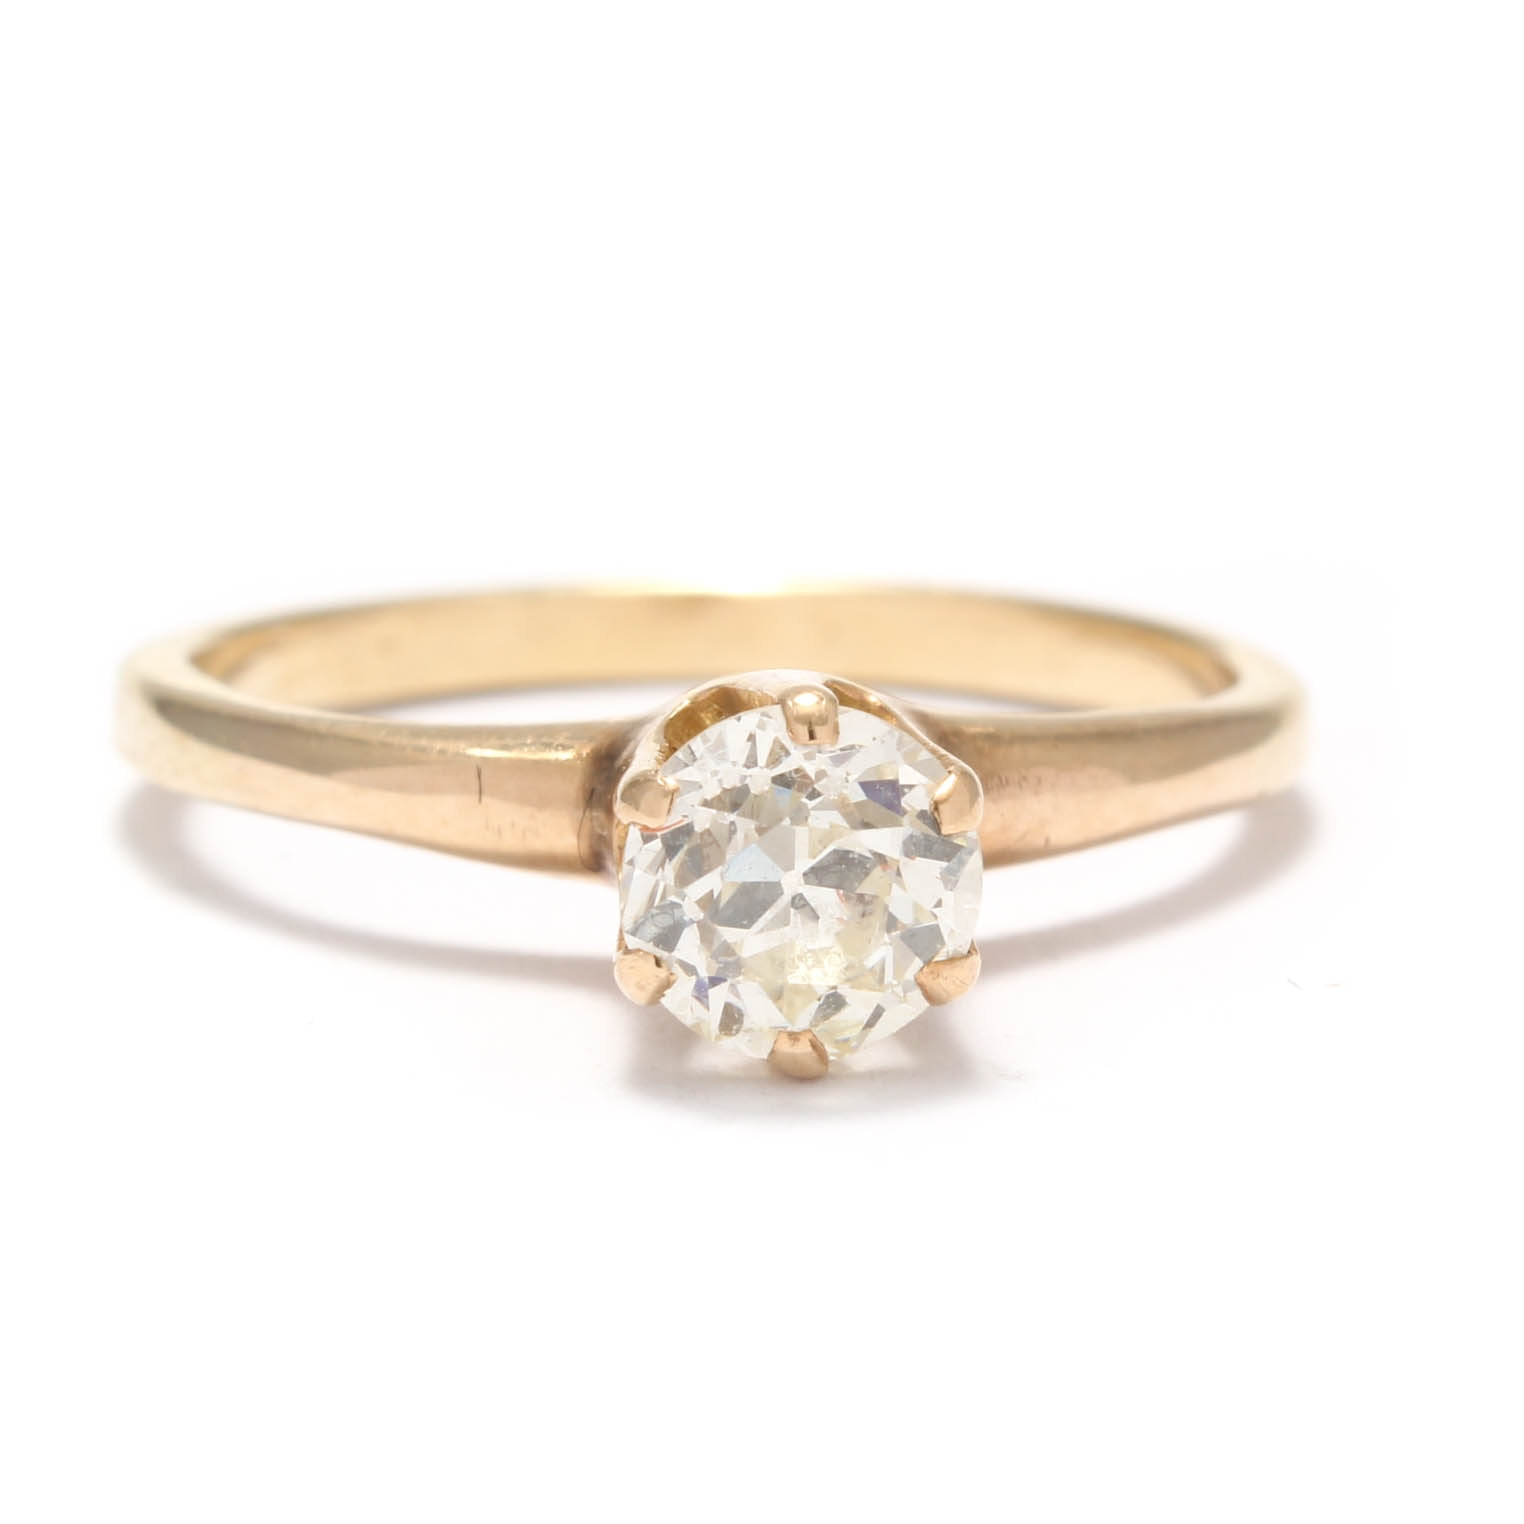 14K Yellow Gold Old European Cut Diamond Solitaire Engagement Ring